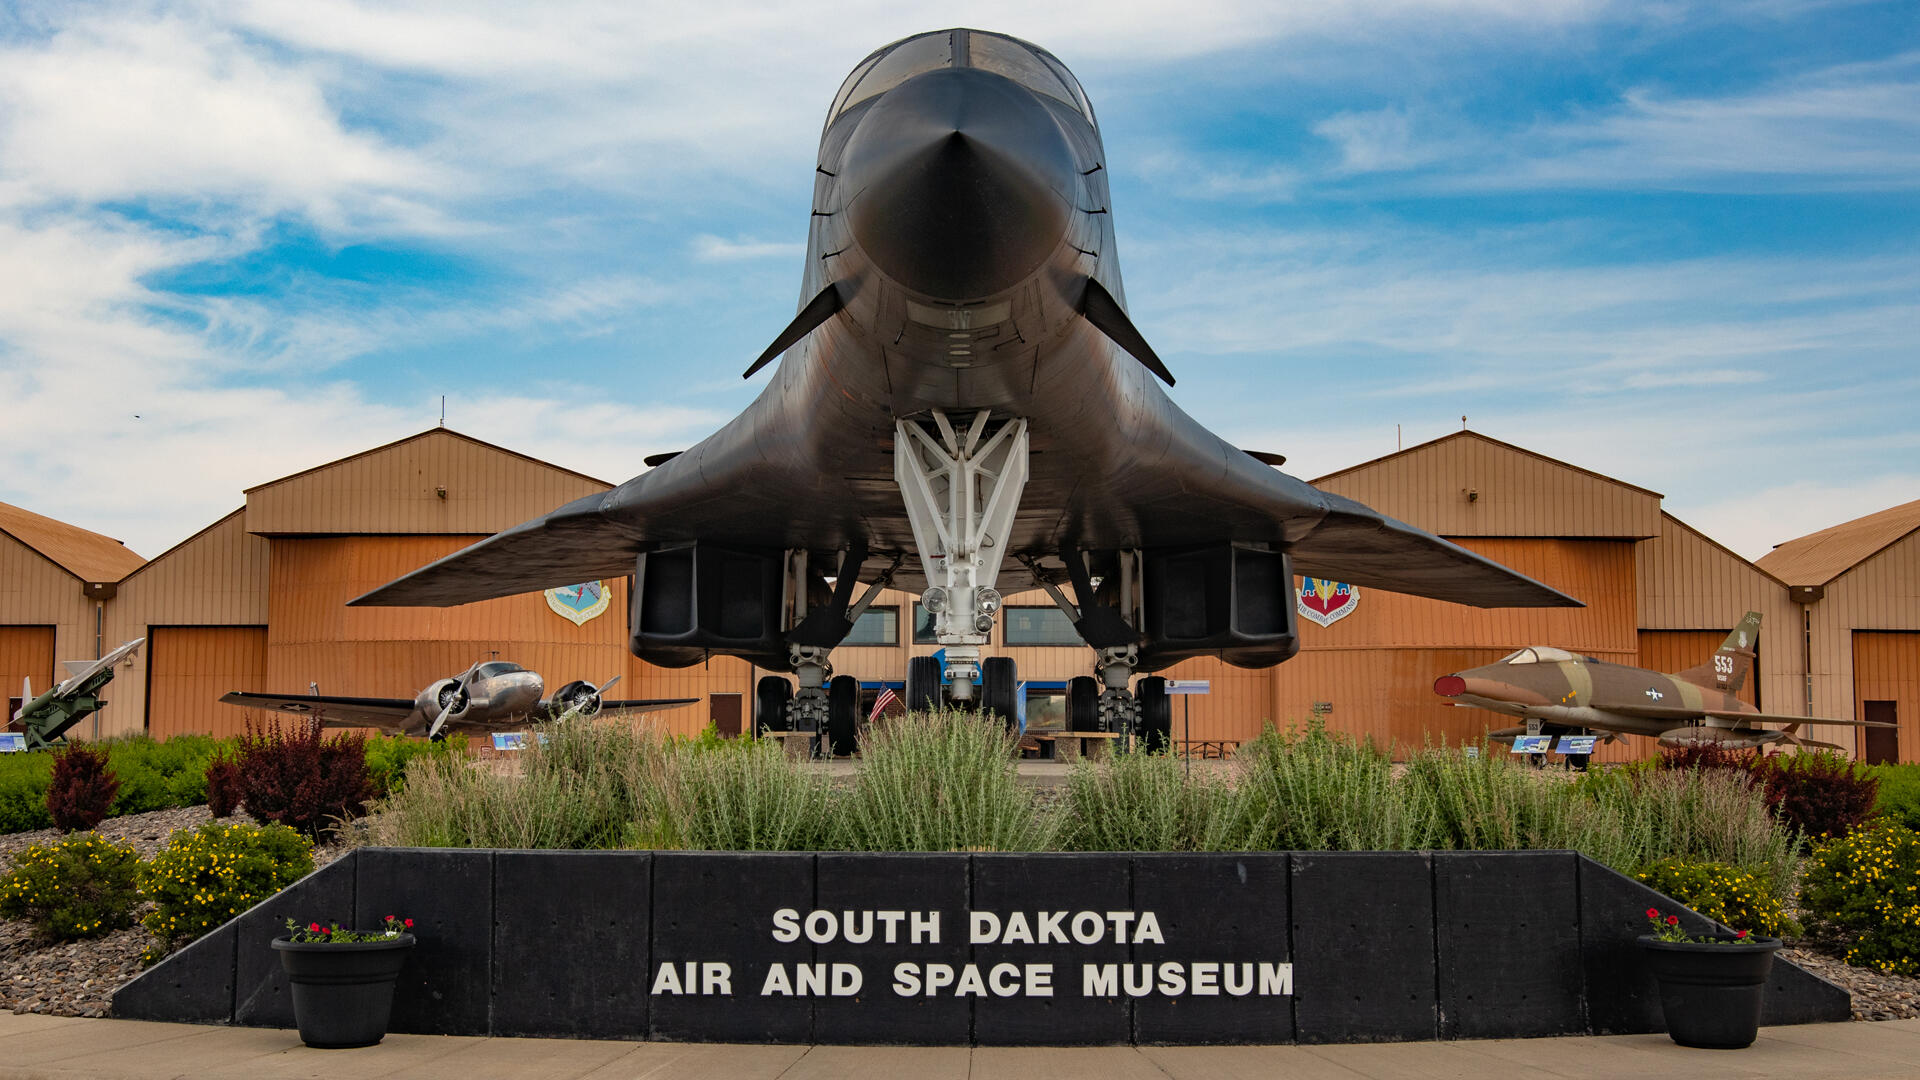 Check out incredible historic aircraft like a B-29, a B-52 and an incredible B-1B at this delightful air museum.